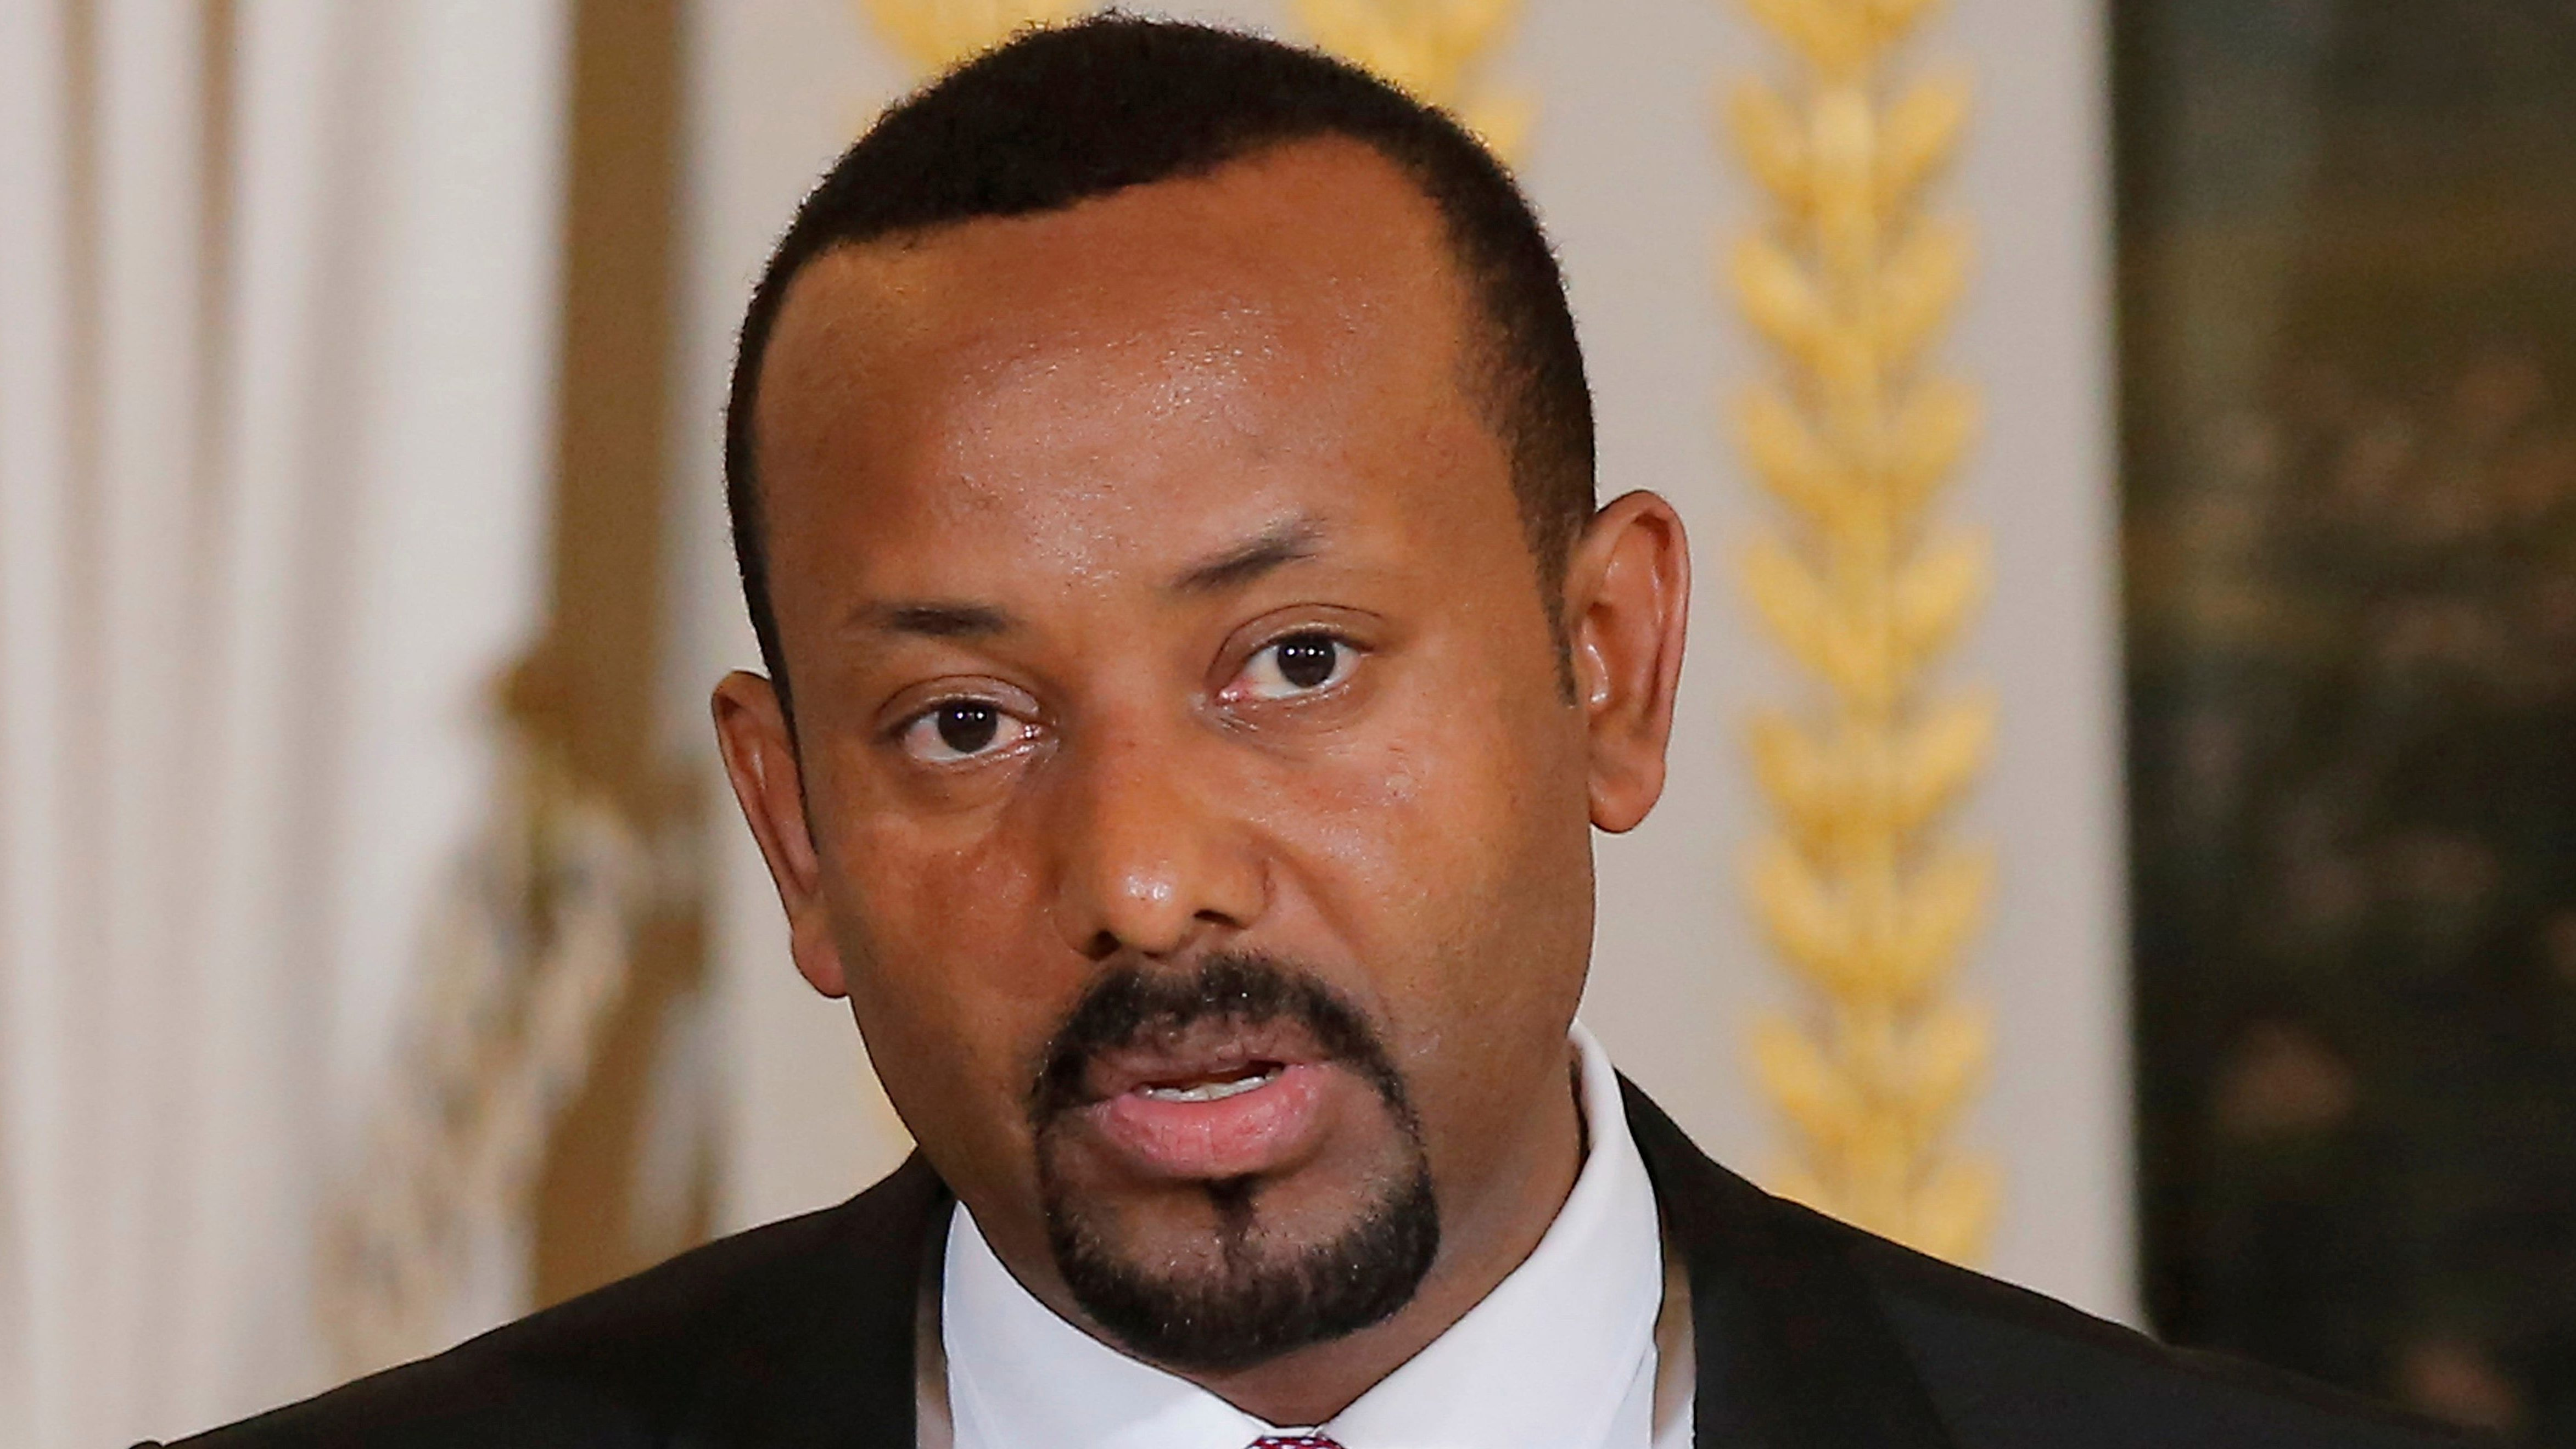 FILE PHOTO: Ethiopian Prime Minister Abiy Ahmed speaks during a media conference at the Elysee Palace in Paris, France, October 29, 2018.